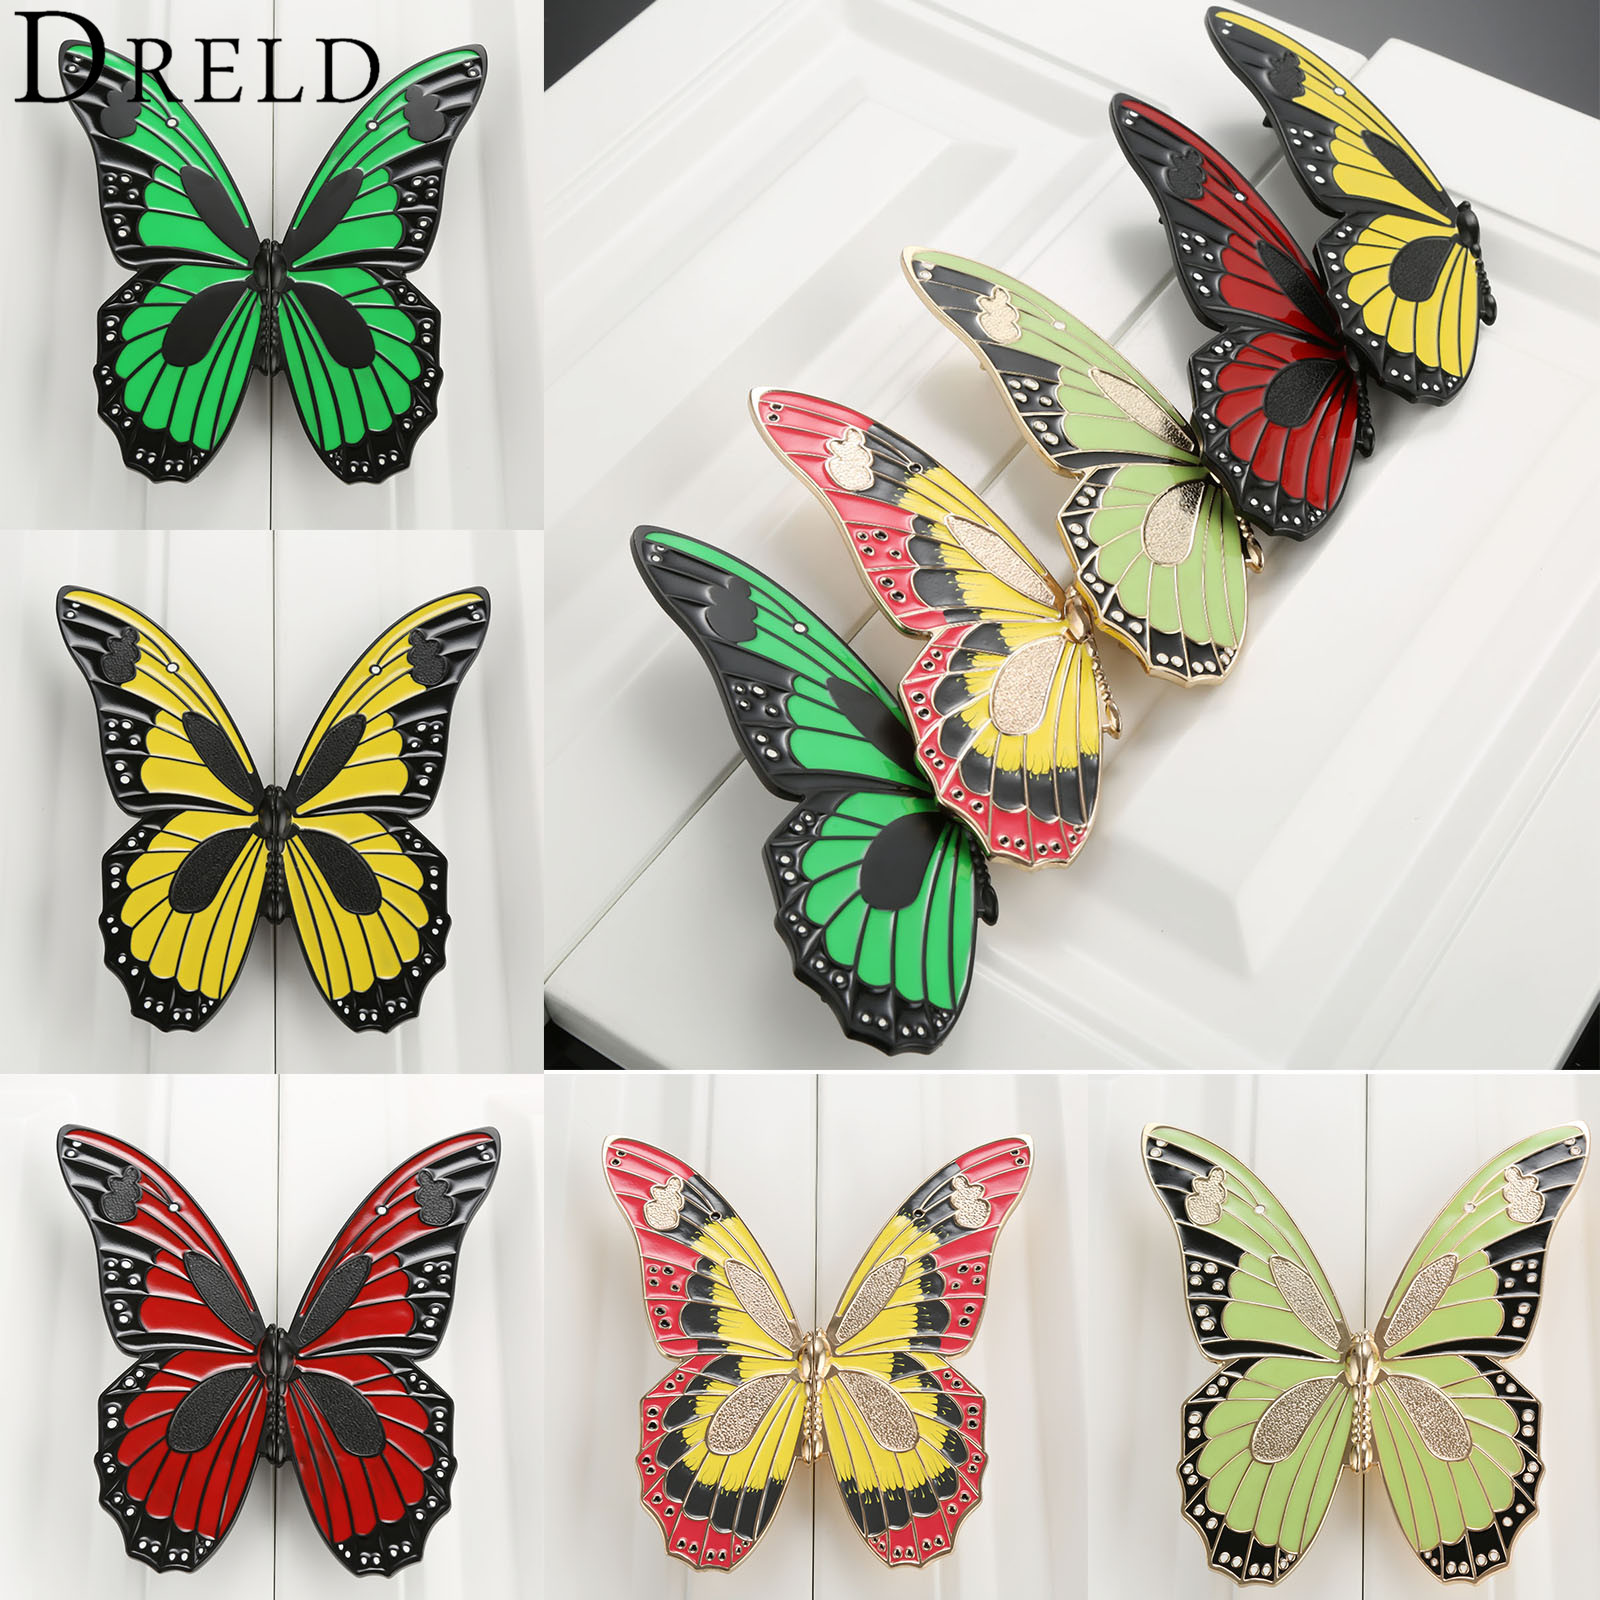 DRELD 1Pc Butterfly Furniture Handles Cabinet Knobs and Handles Zinc Alloy Door Knob Cupboard Dresser Drawer Kitchen Pull Handle dreld 96 128 160mm furniture handle modern cabinet knobs and handles door cupboard drawer kitchen pull handle furniture hardware